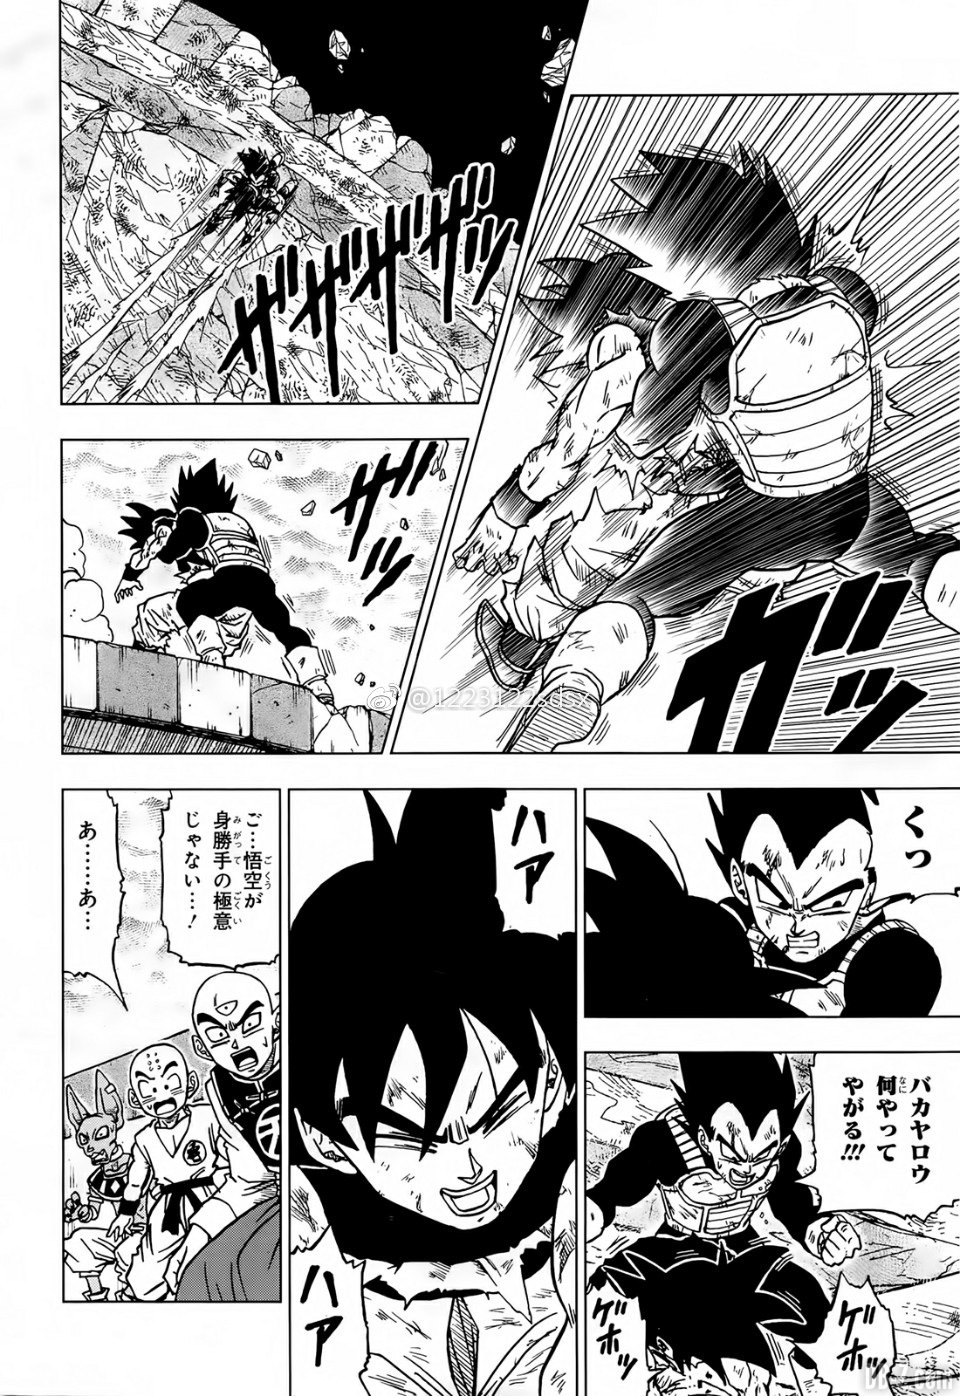 Chapitre 41 de Dragon Ball Super 2